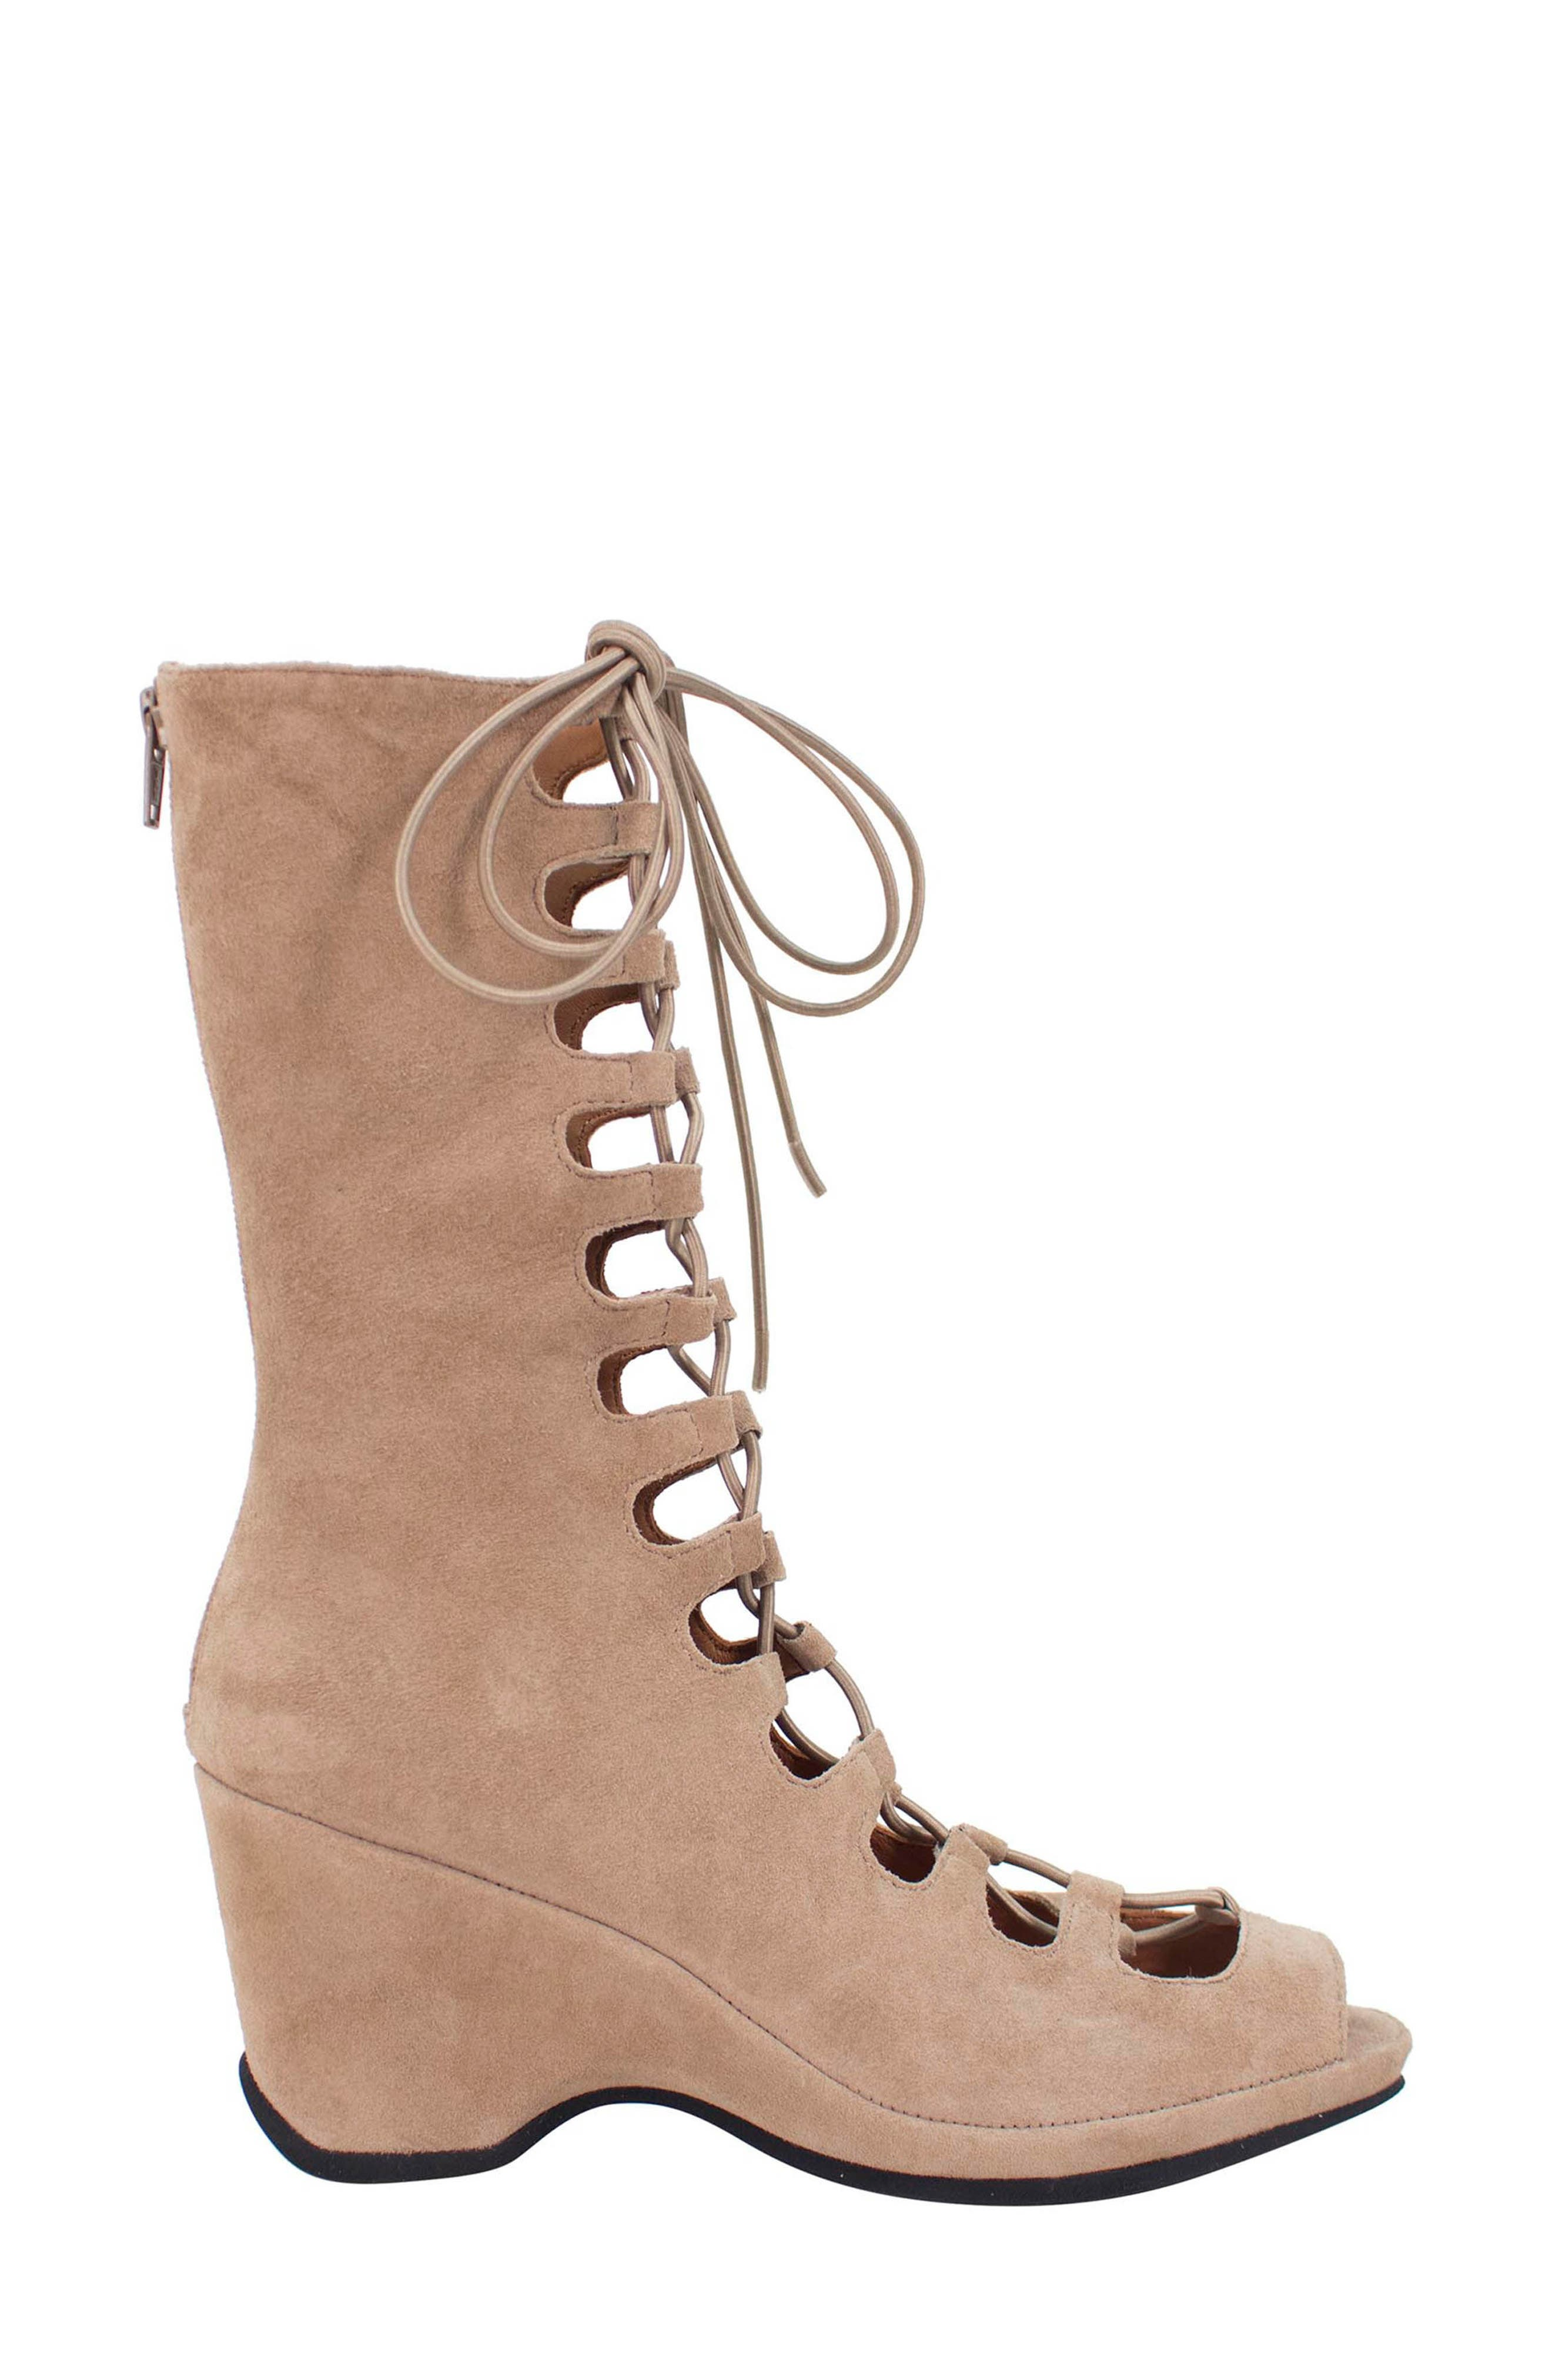 Othello Lace-Up Sandal,                             Alternate thumbnail 3, color,                             Taupe Suede